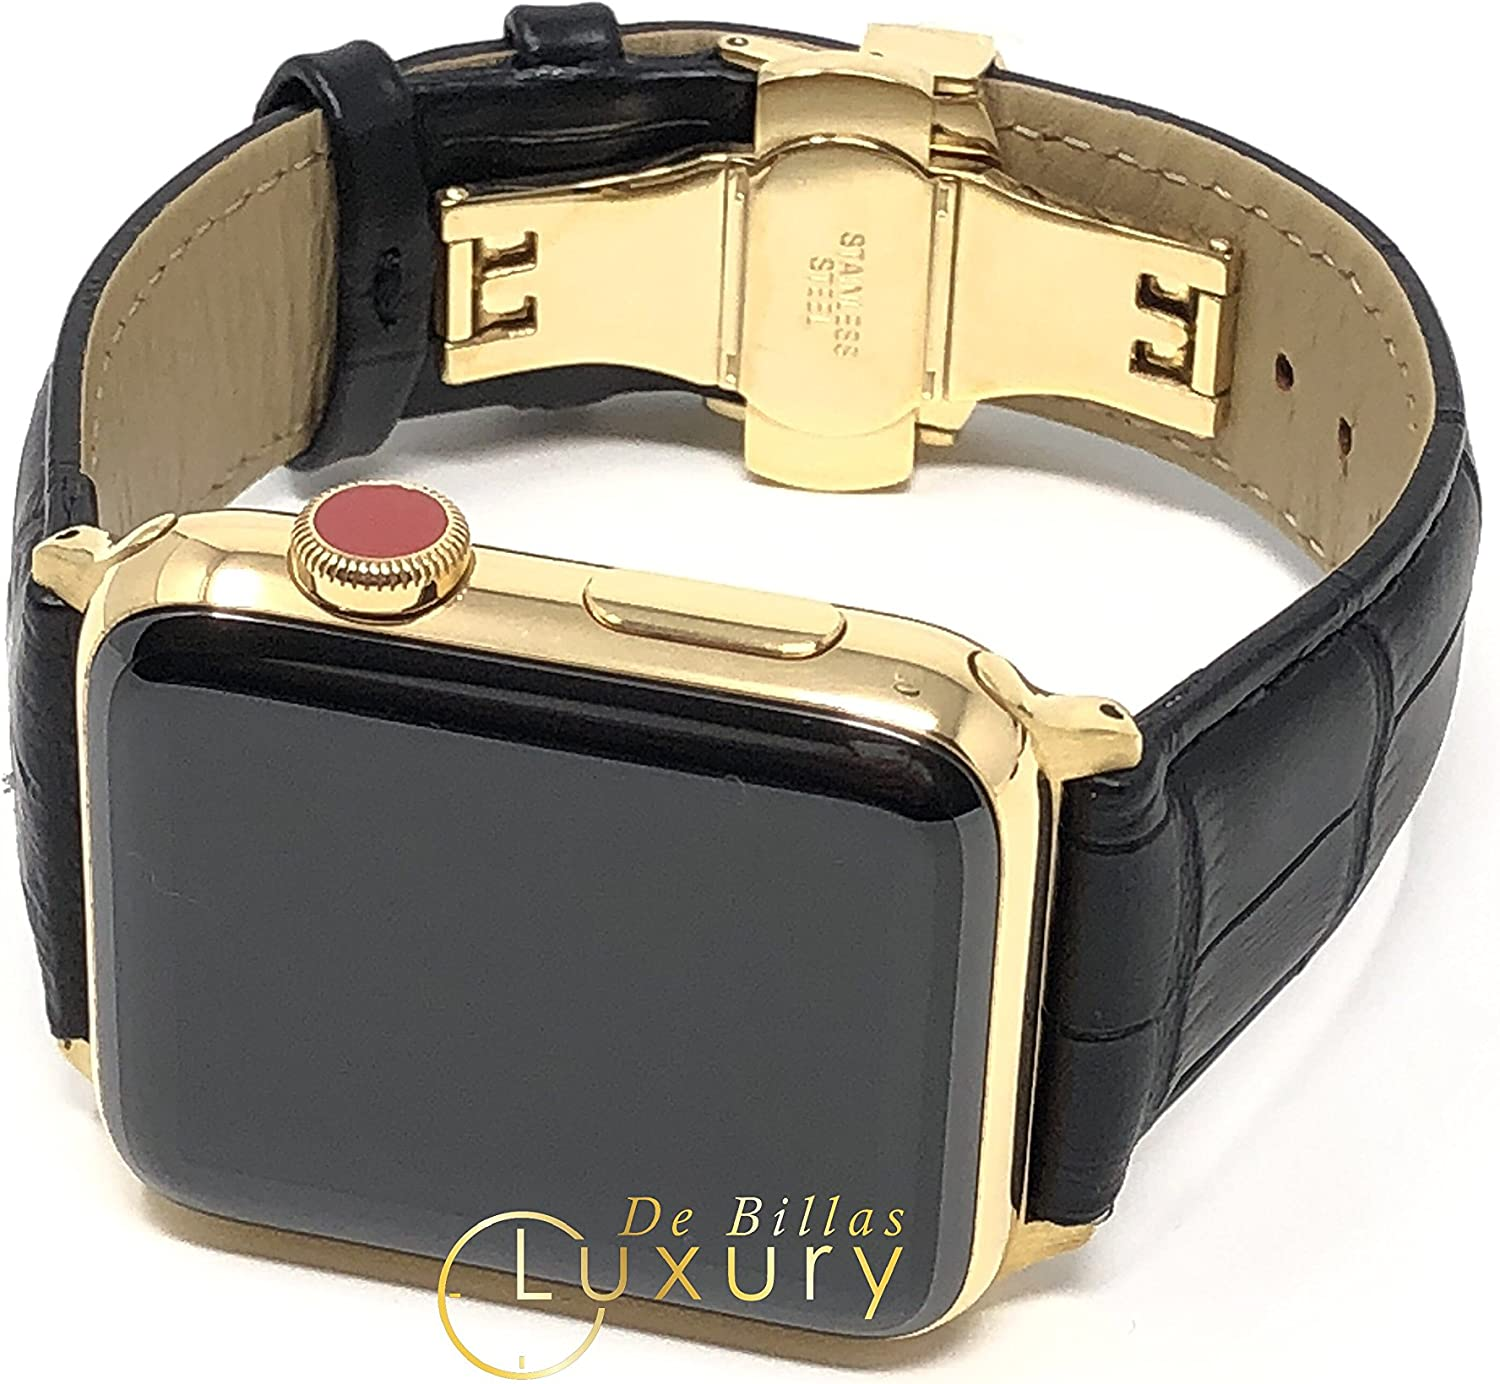 Custom 24K Gold Plated 42MM iWatch Series 3 with Black Leather Deploy Buckle